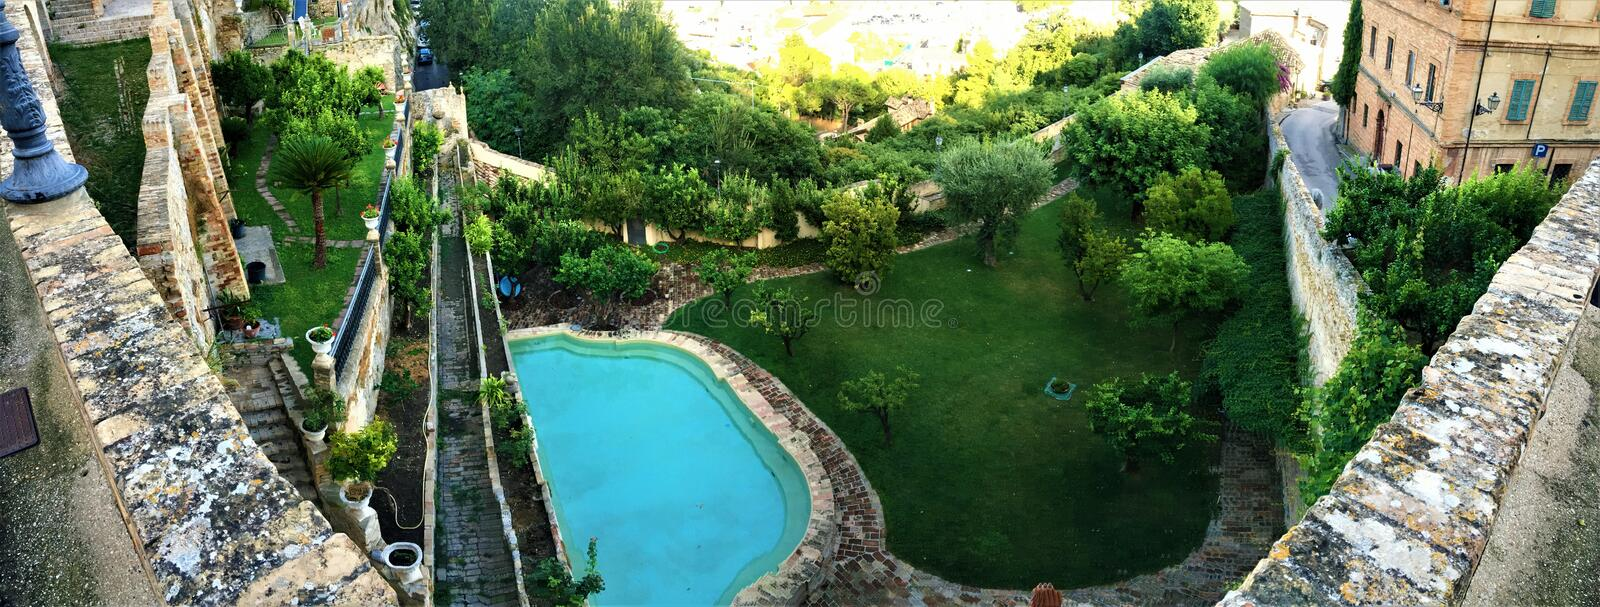 Garden with pool, trees and historical buildings. Italian style, Grottammare, Marche, view, landscape, sunny sky, garden with pool, trees and historical royalty free stock images